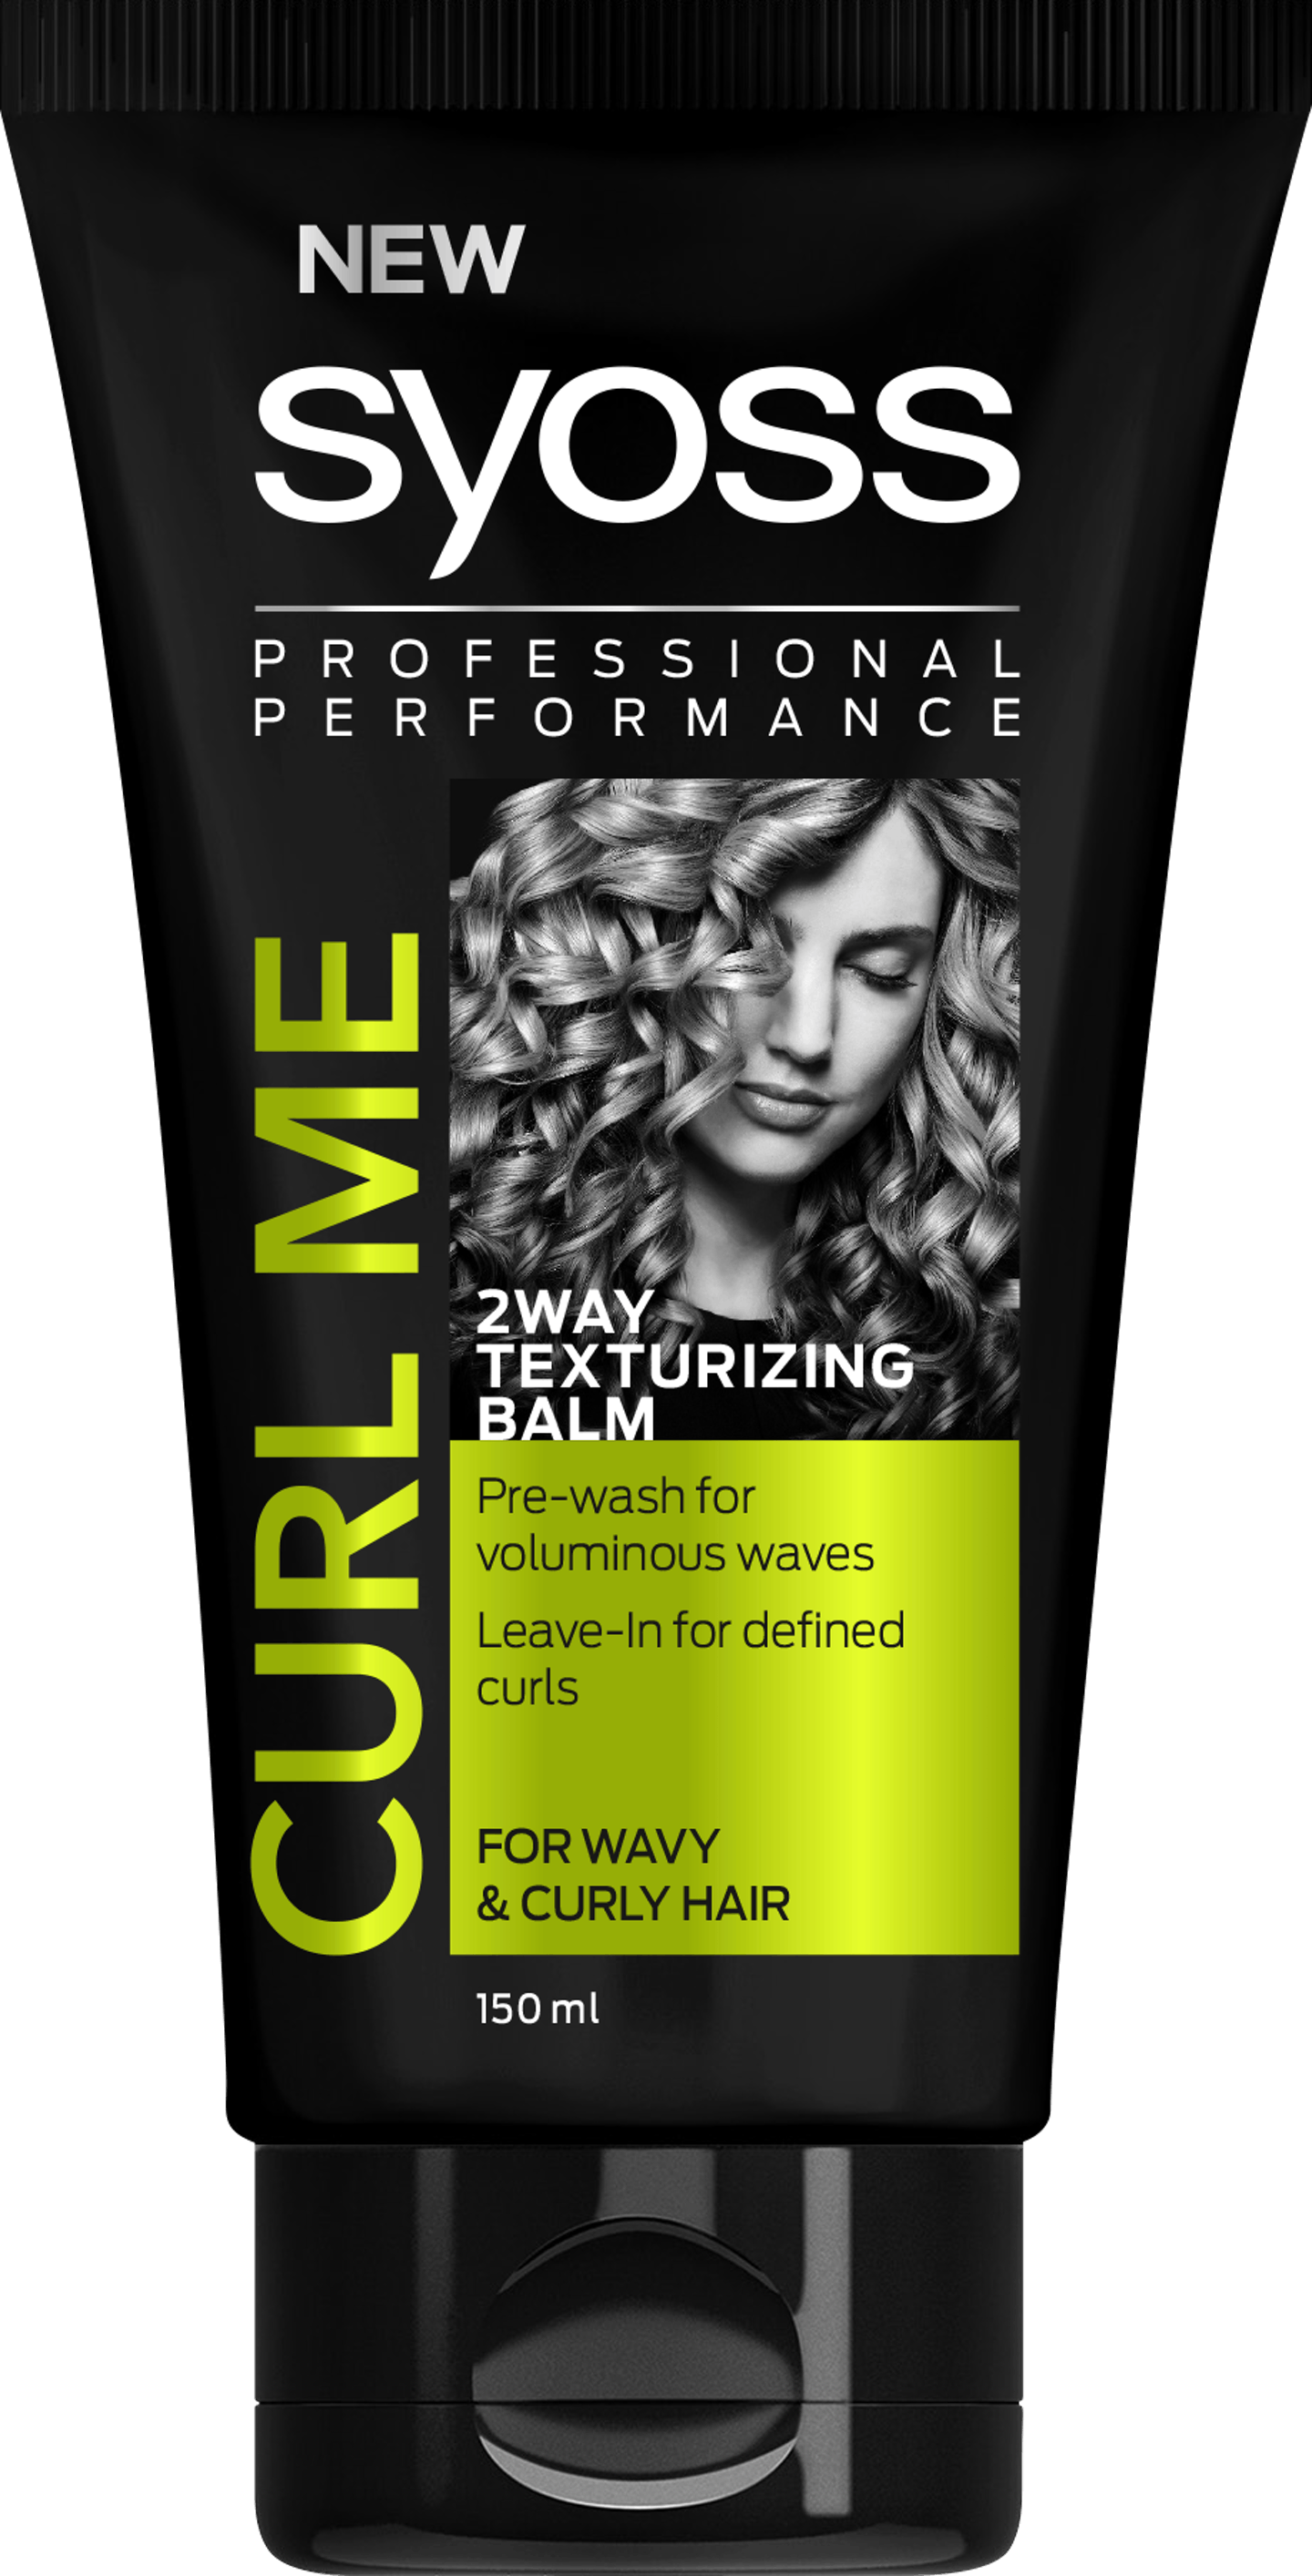 Syoss Curl Me 2 Way Texturizing Balm